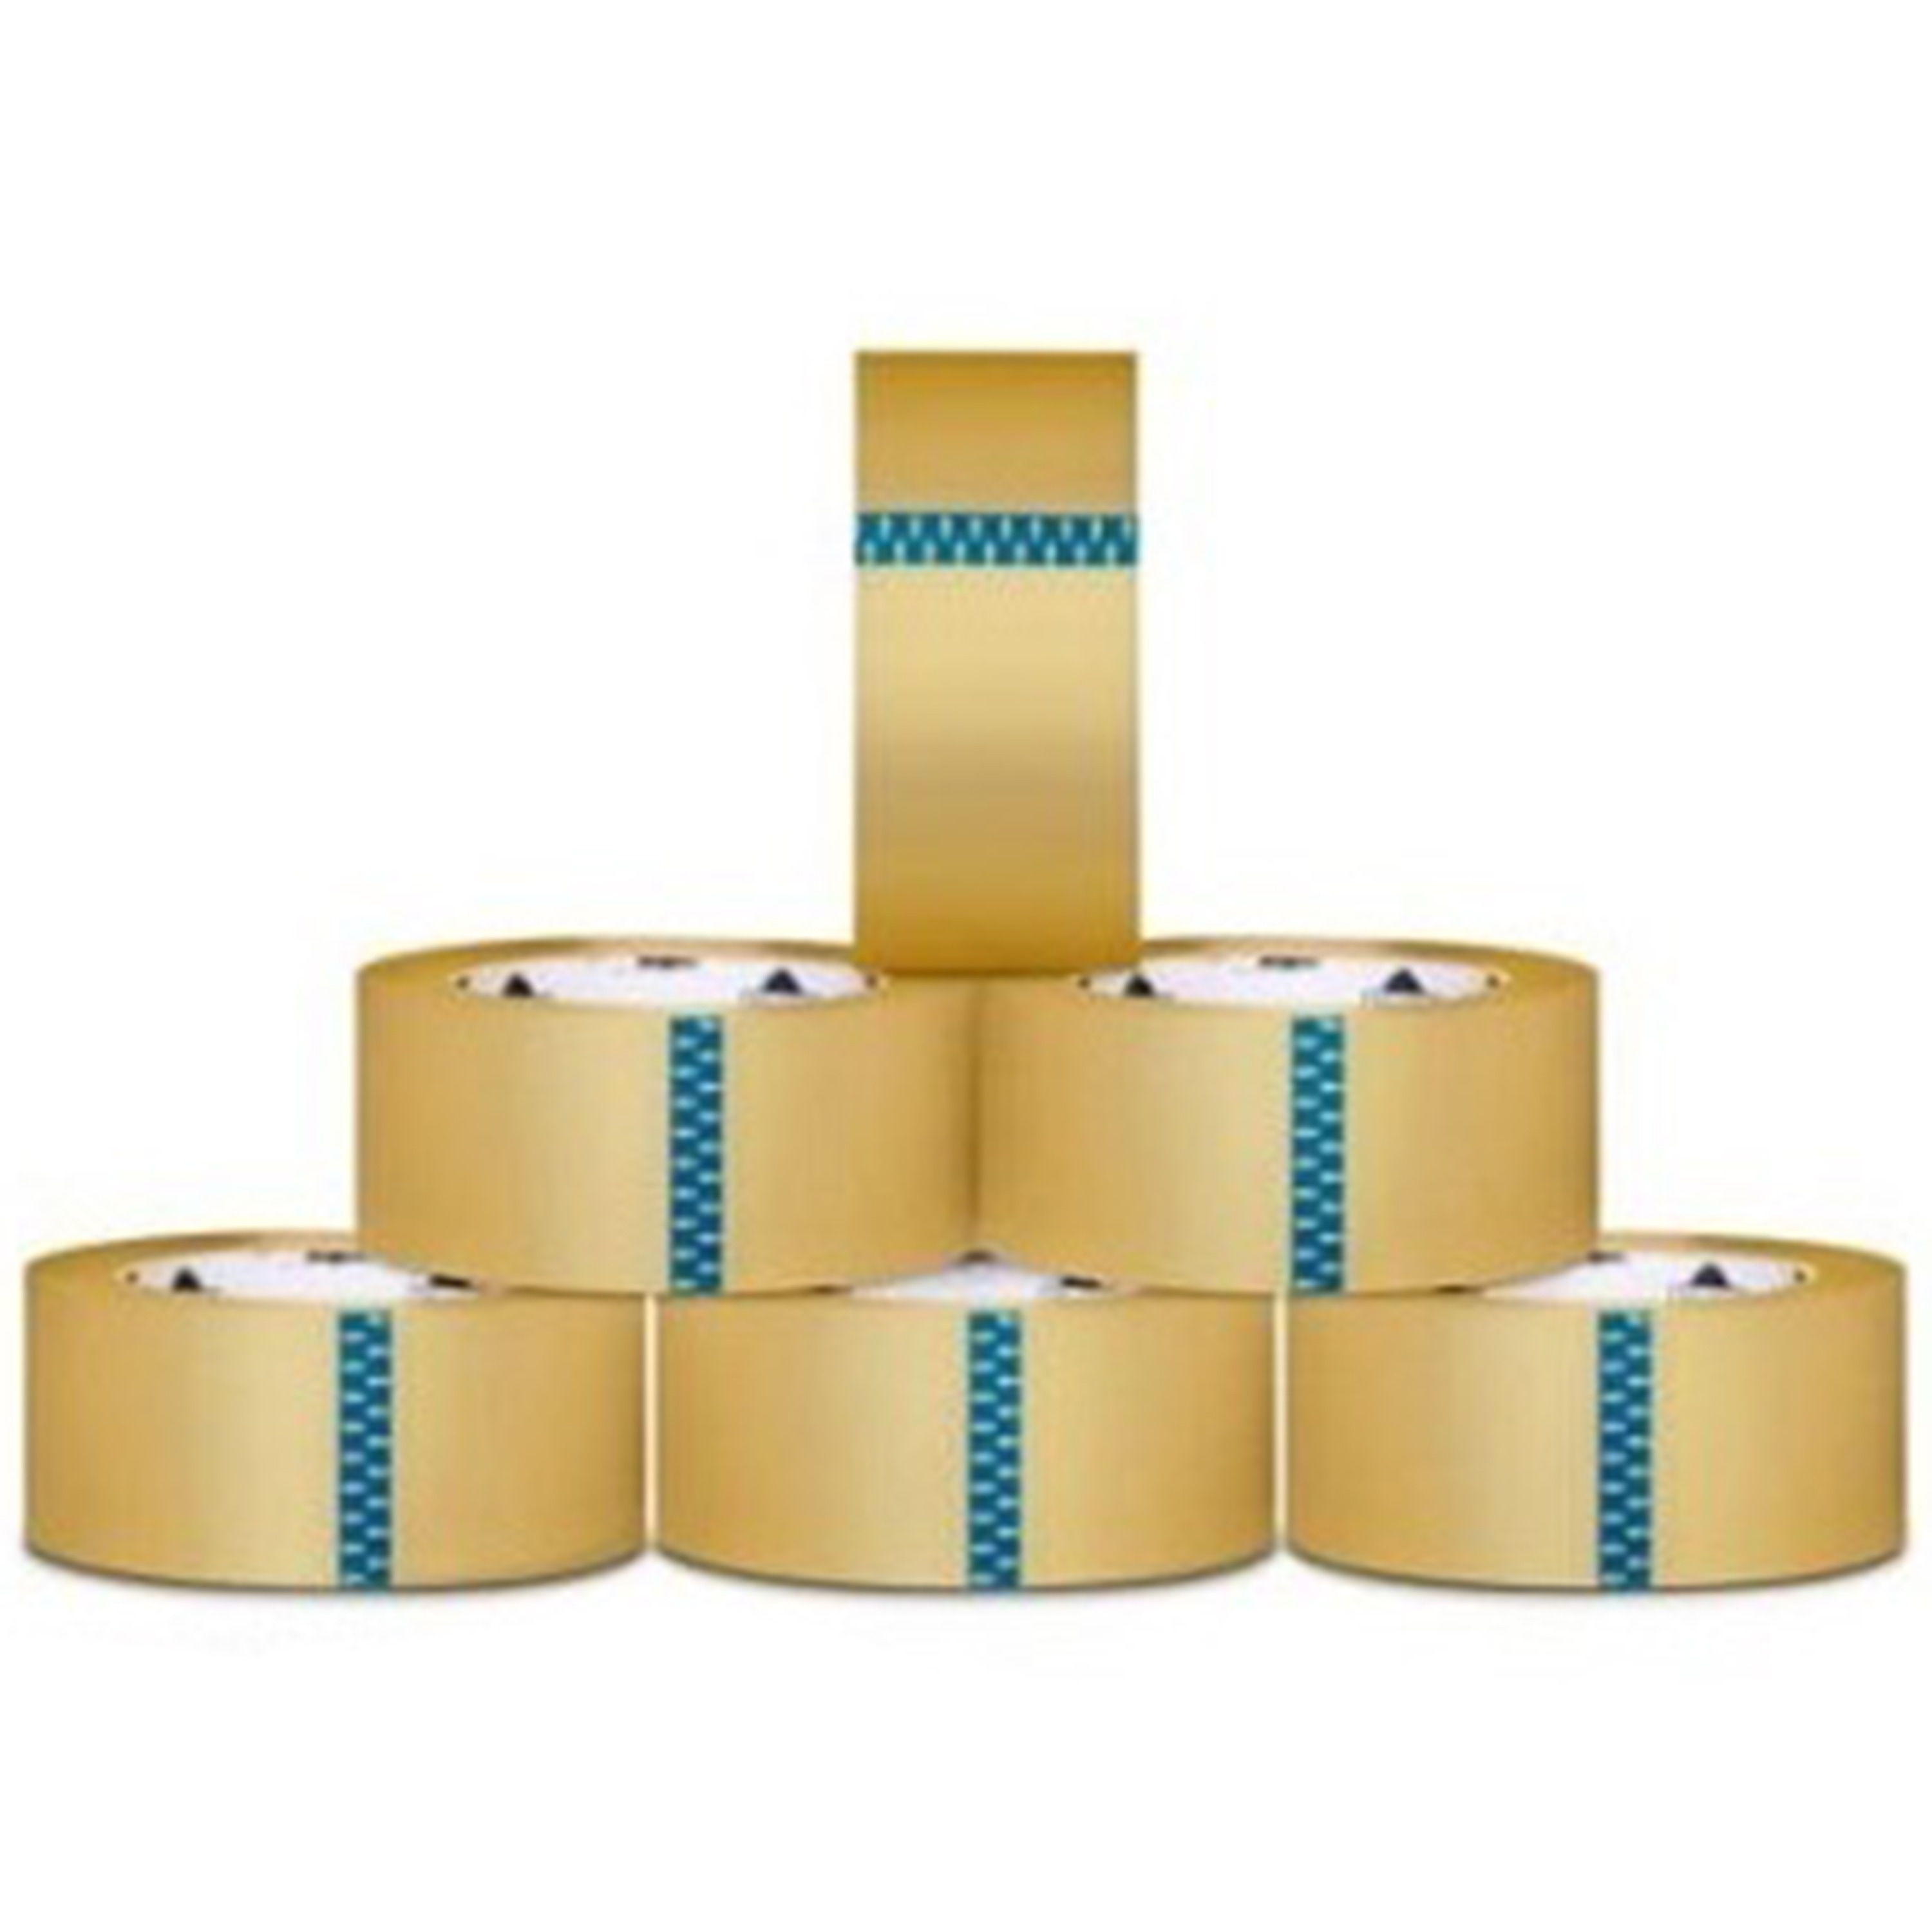 Packagingsuppliesbymail 6 ROLLS Carton Box Sealing Packaging Packing Tape 1.6 Mil 2 Inch x 110 yard (330 ft)